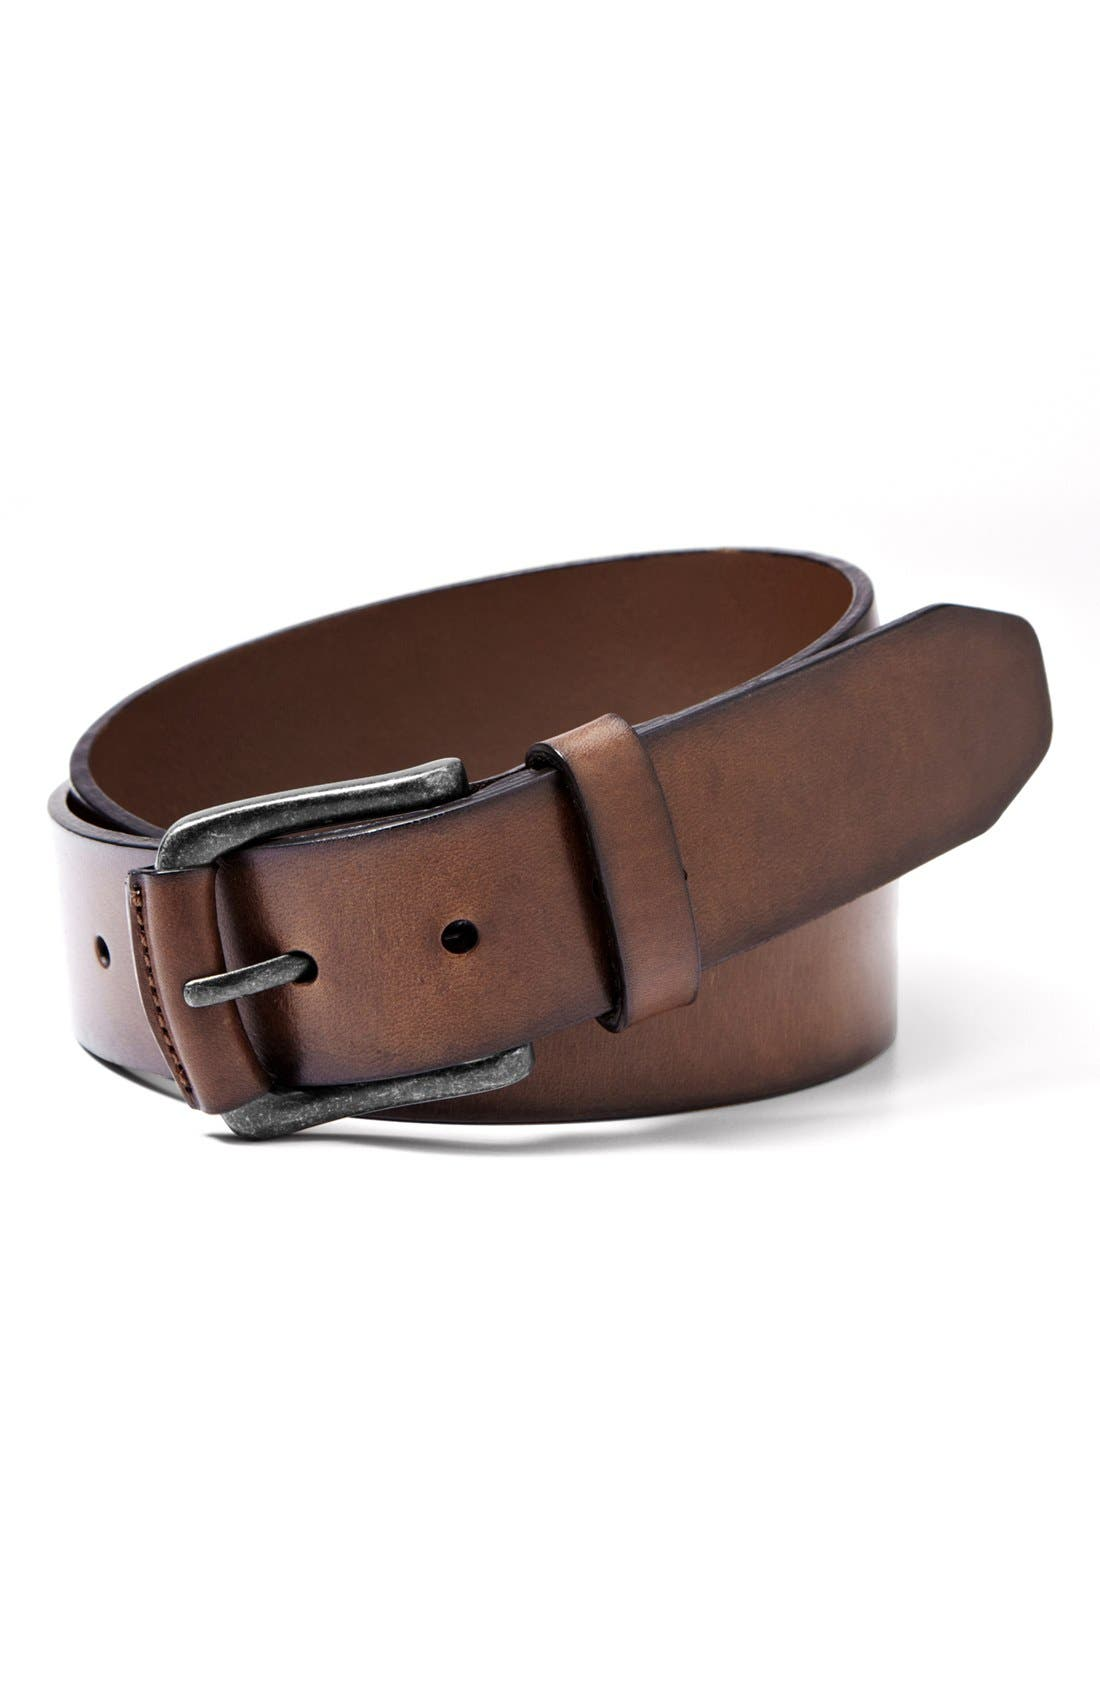 Main Image - Fossil 'Carson' Leather Belt